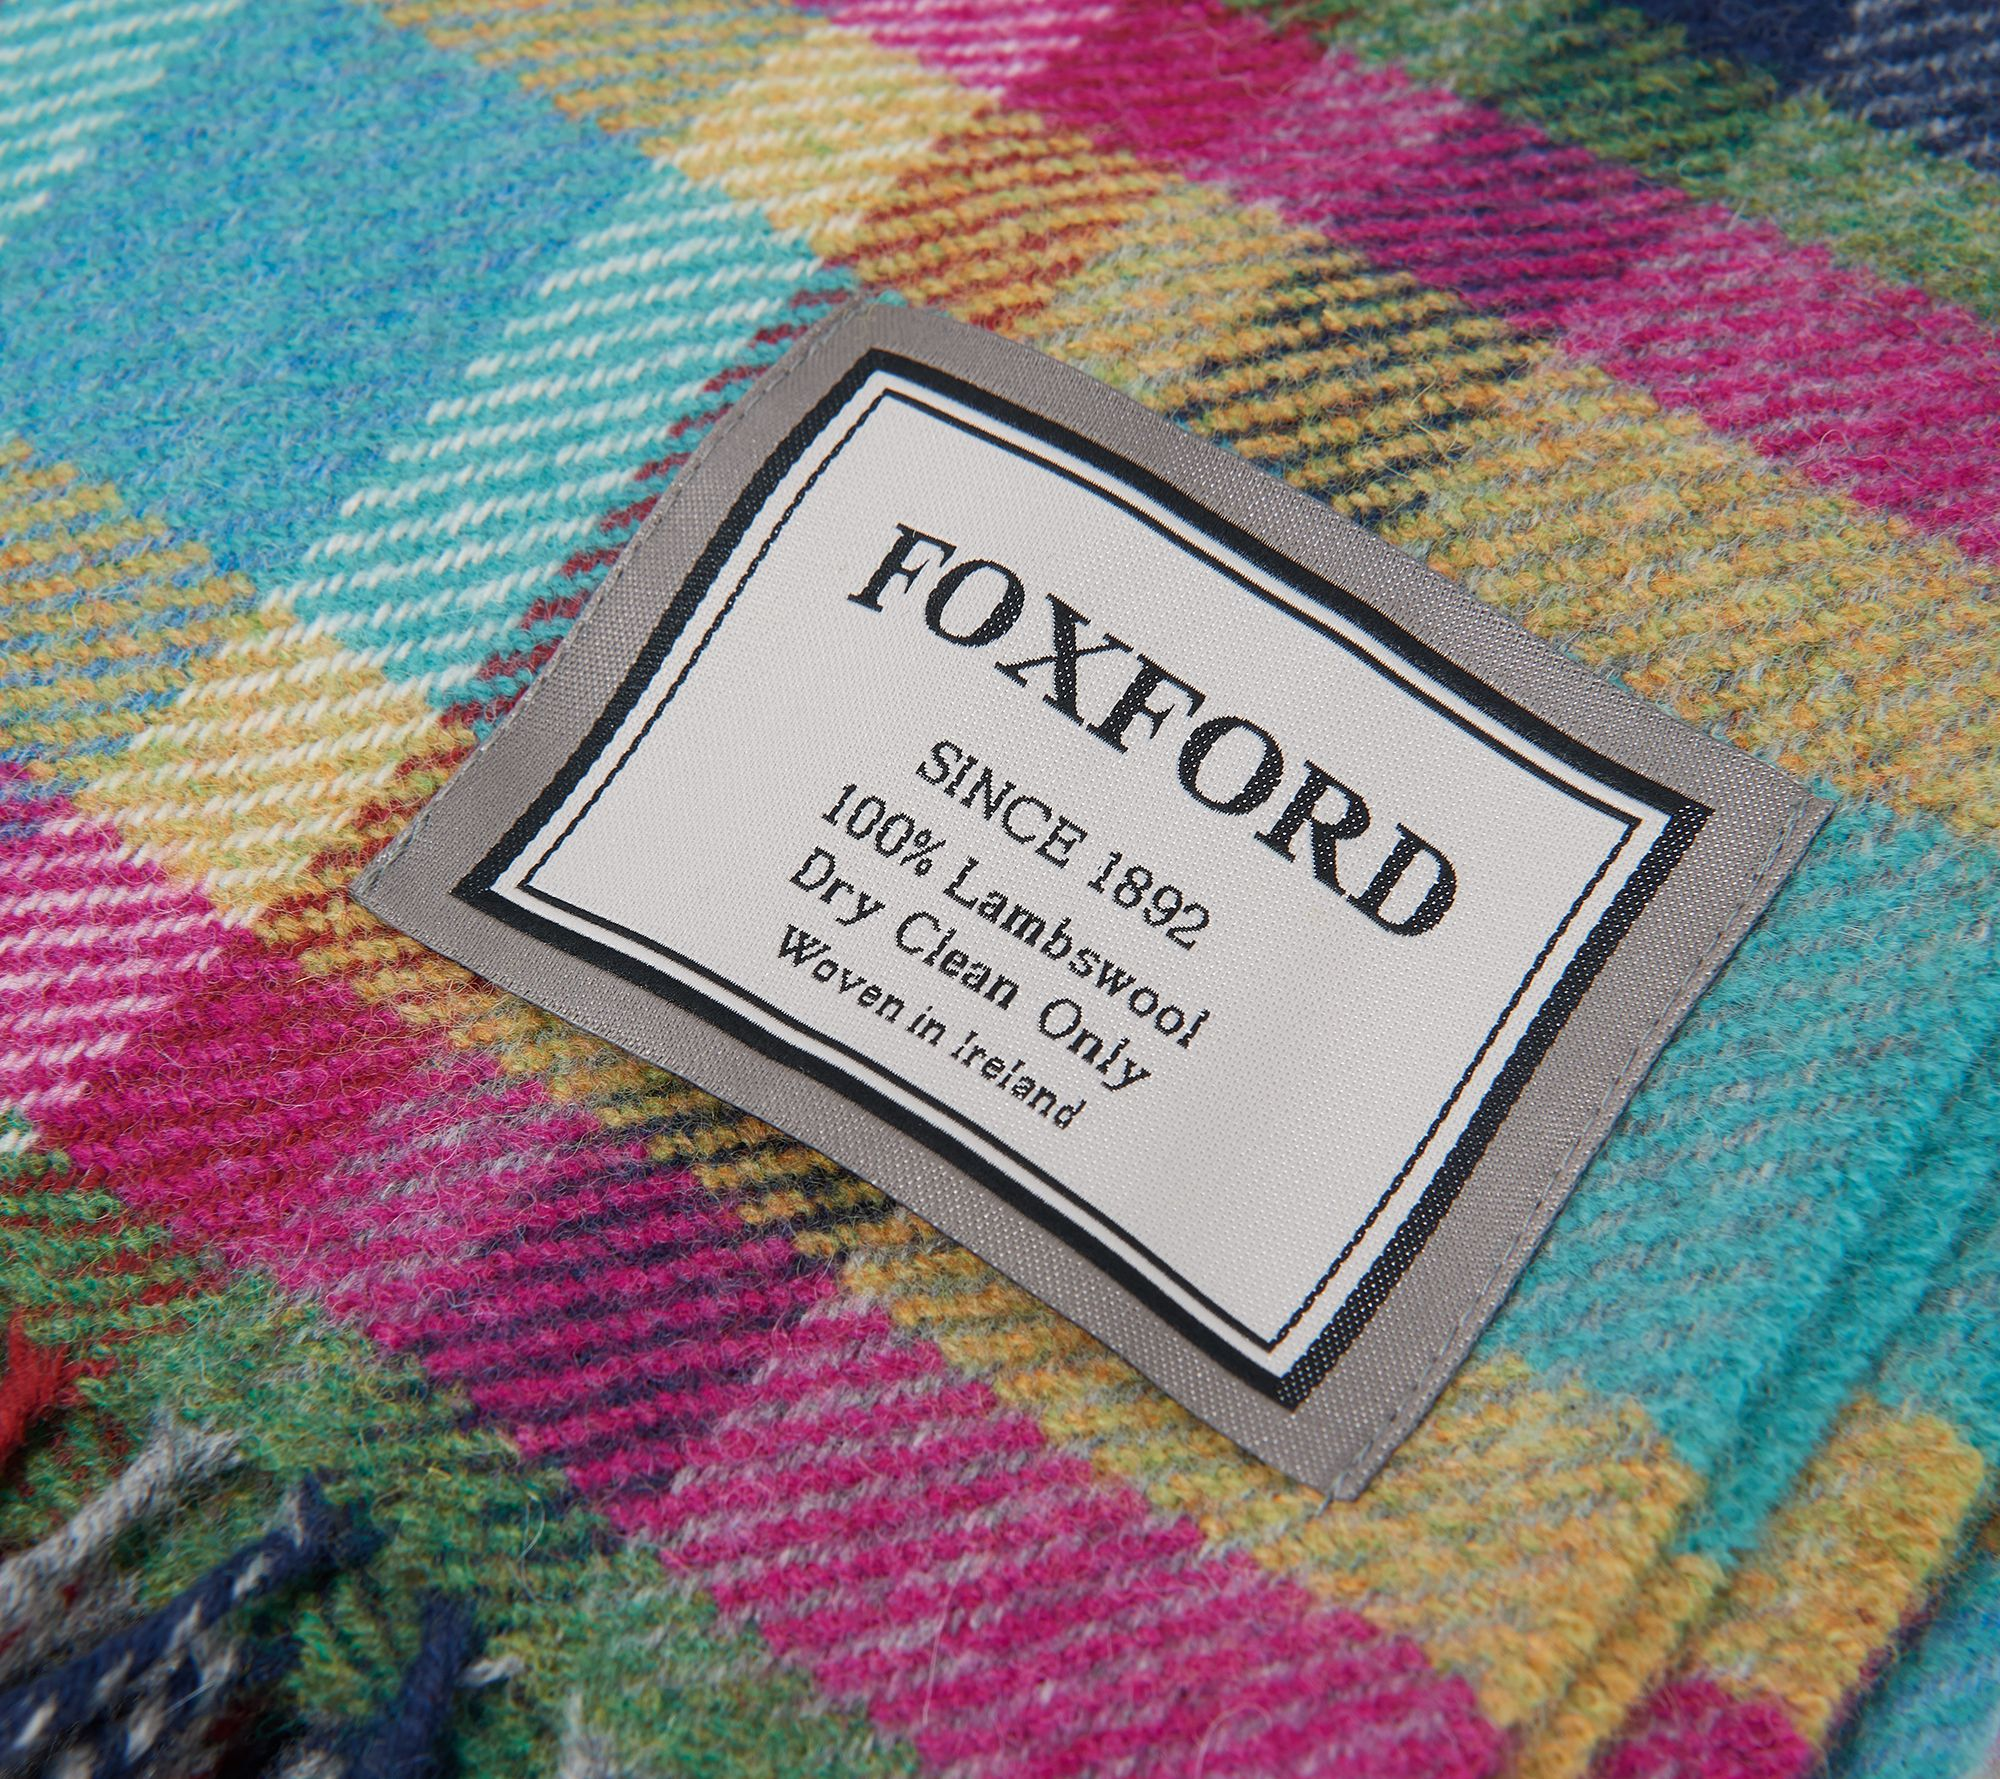 140 cm x 180 cm Foxford Oxford Rouge Réversible à Pois 100/% Lambs Wool Throw